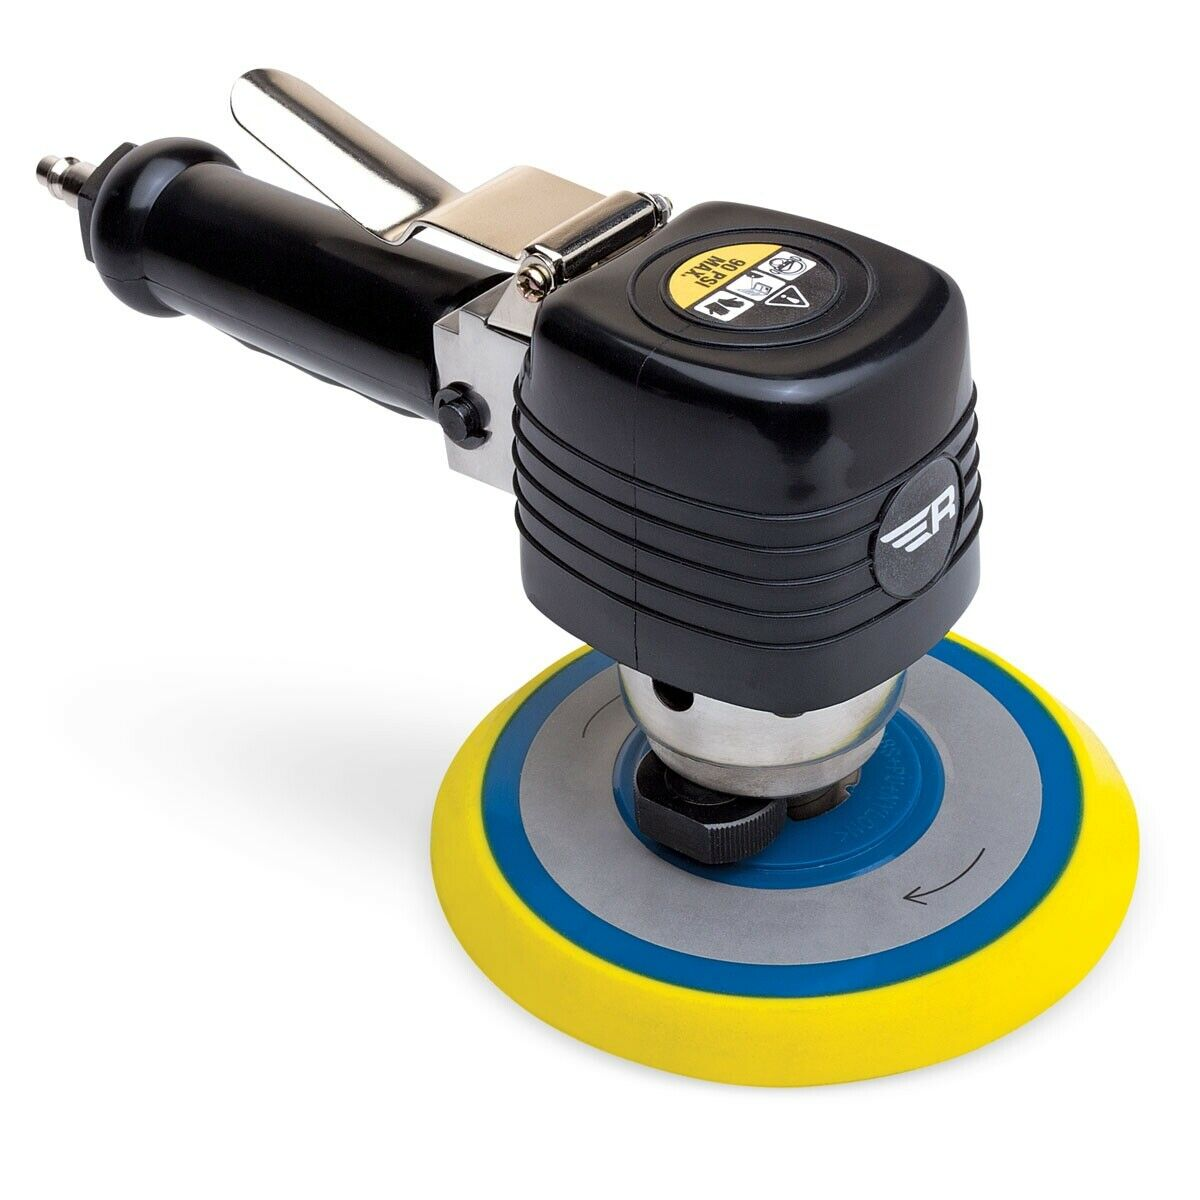 Rockwood 6 inch Dual Action Air Sander Over Molded Ergonomic Grip Low Vibration. Buy it now for 34.99